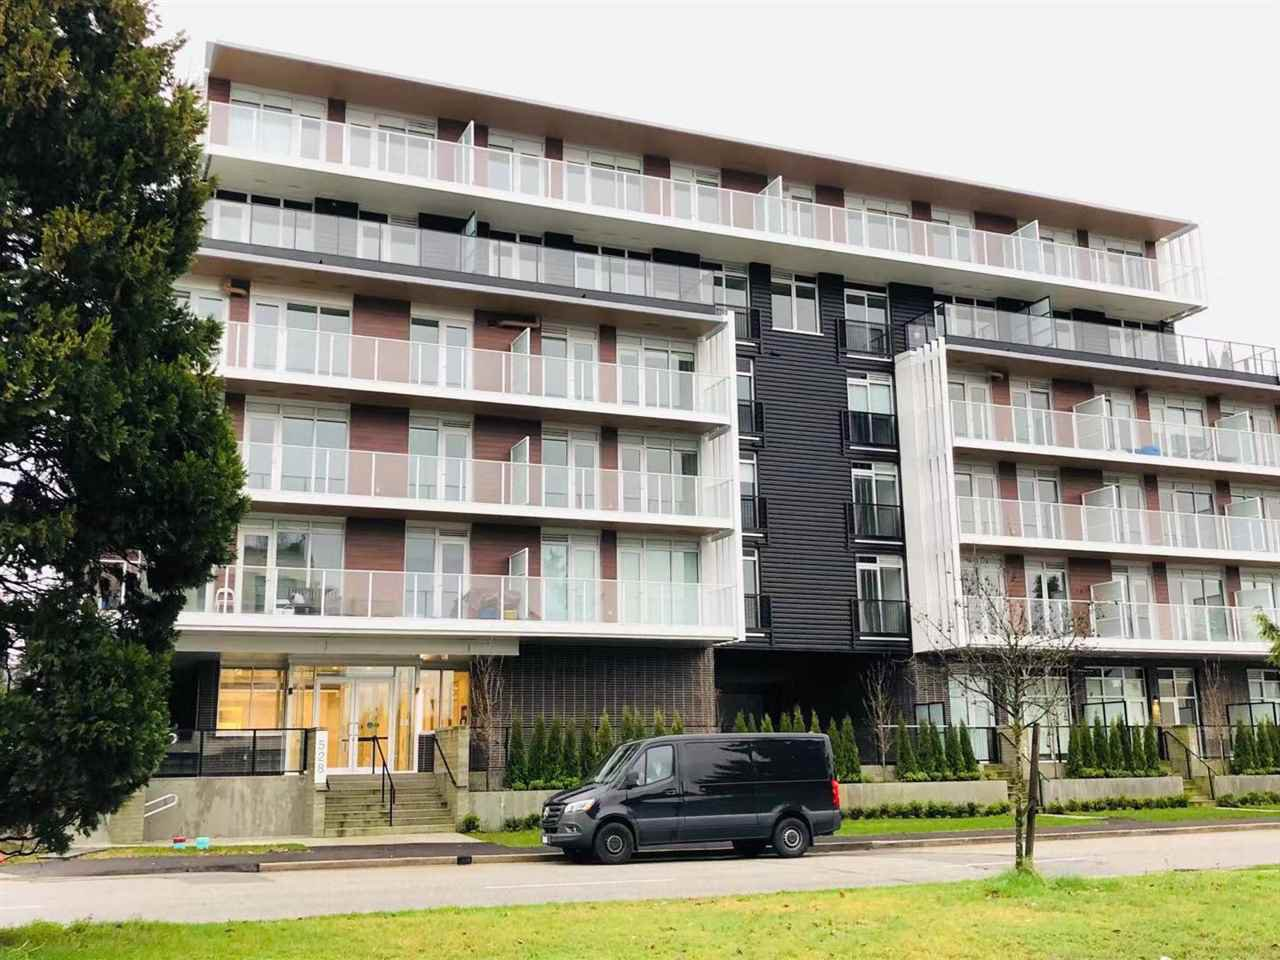 Main Photo: 305 528 W KING EDWARD Avenue in Vancouver: Cambie Condo for sale (Vancouver West)  : MLS®# R2526597